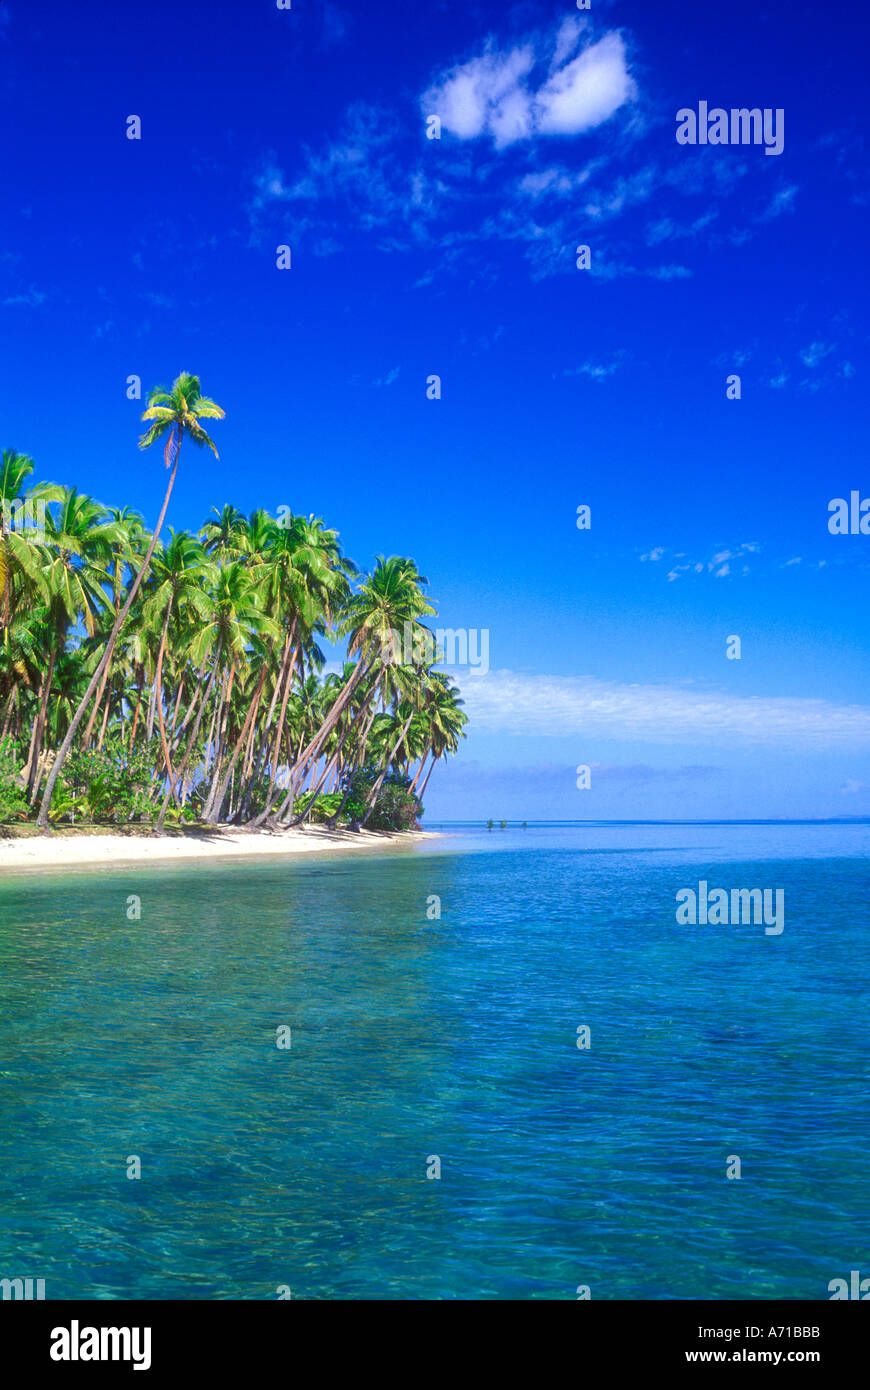 Coconut palm trees on beach in Fiji South Pacific Ocean - Stock Image